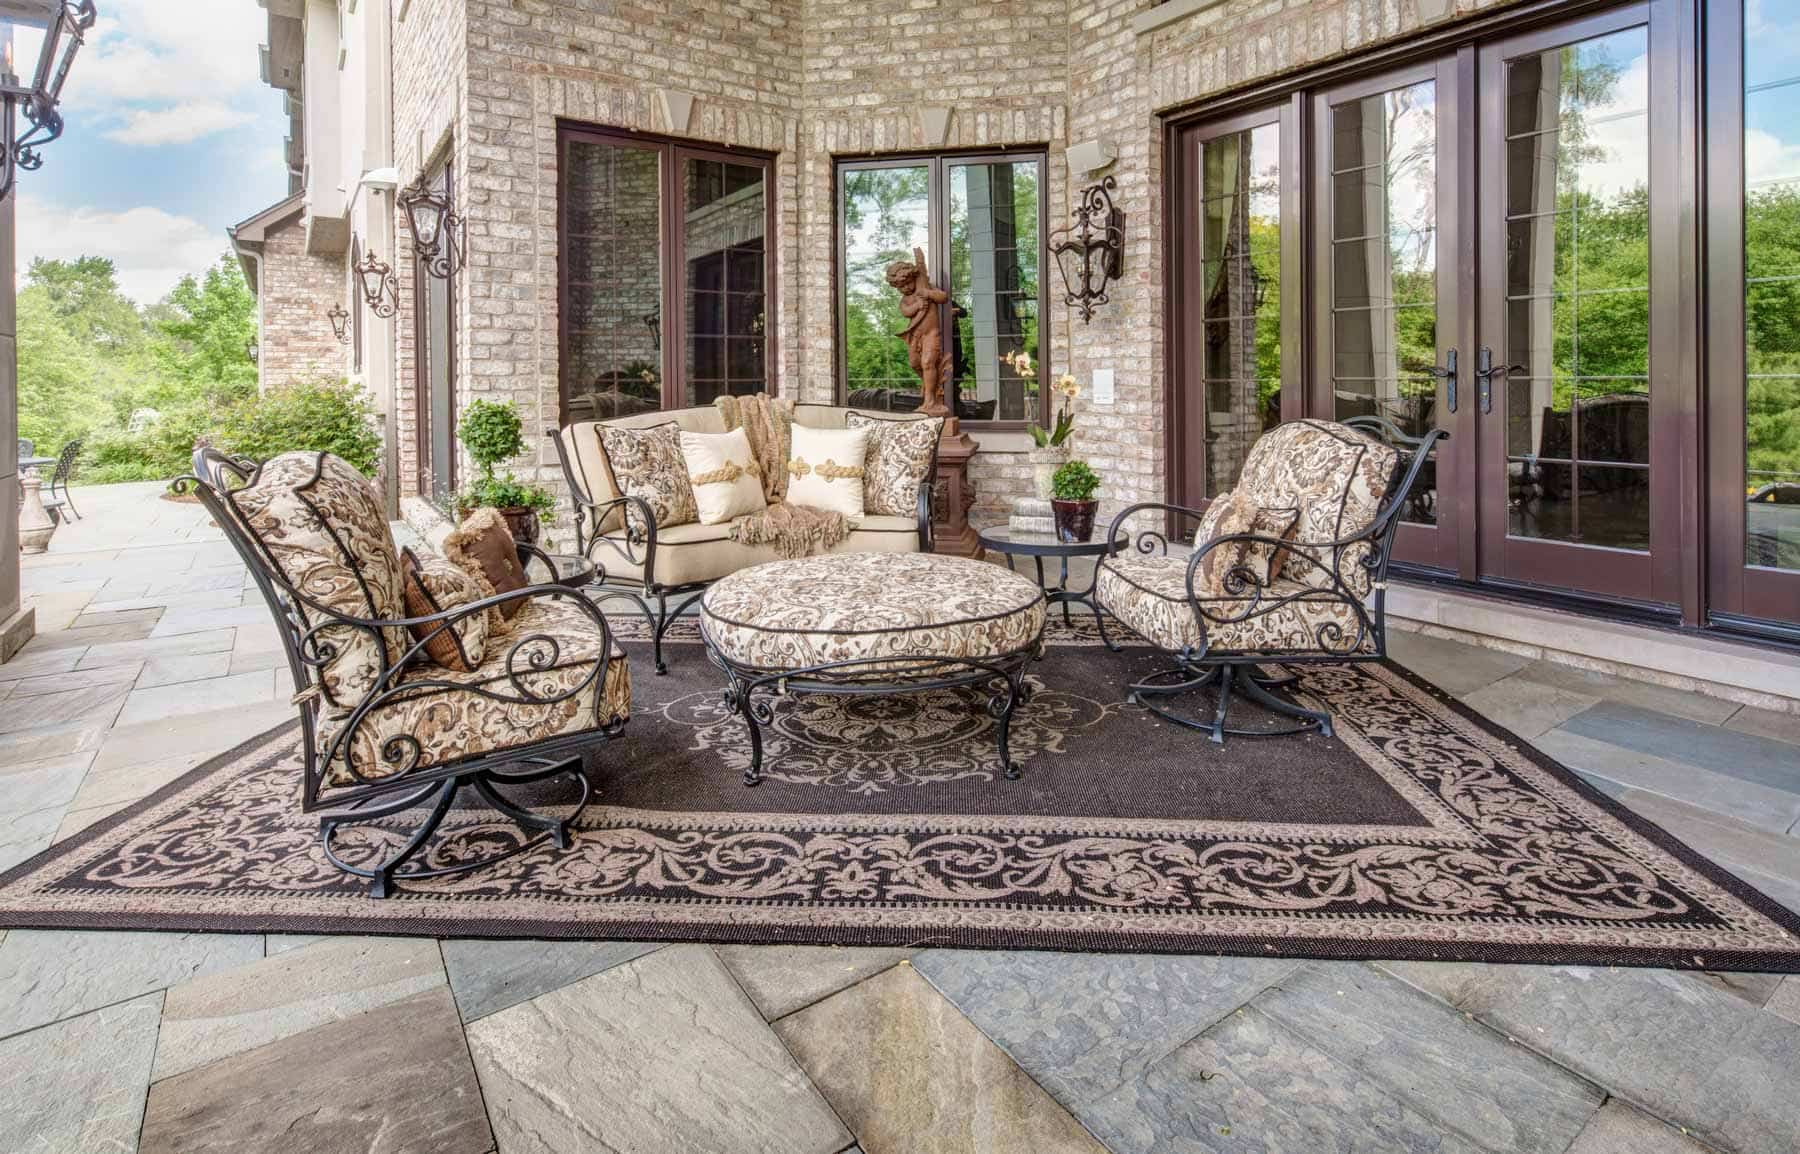 Merveilleux Luxury Outdoor Patio Furniture And Rug